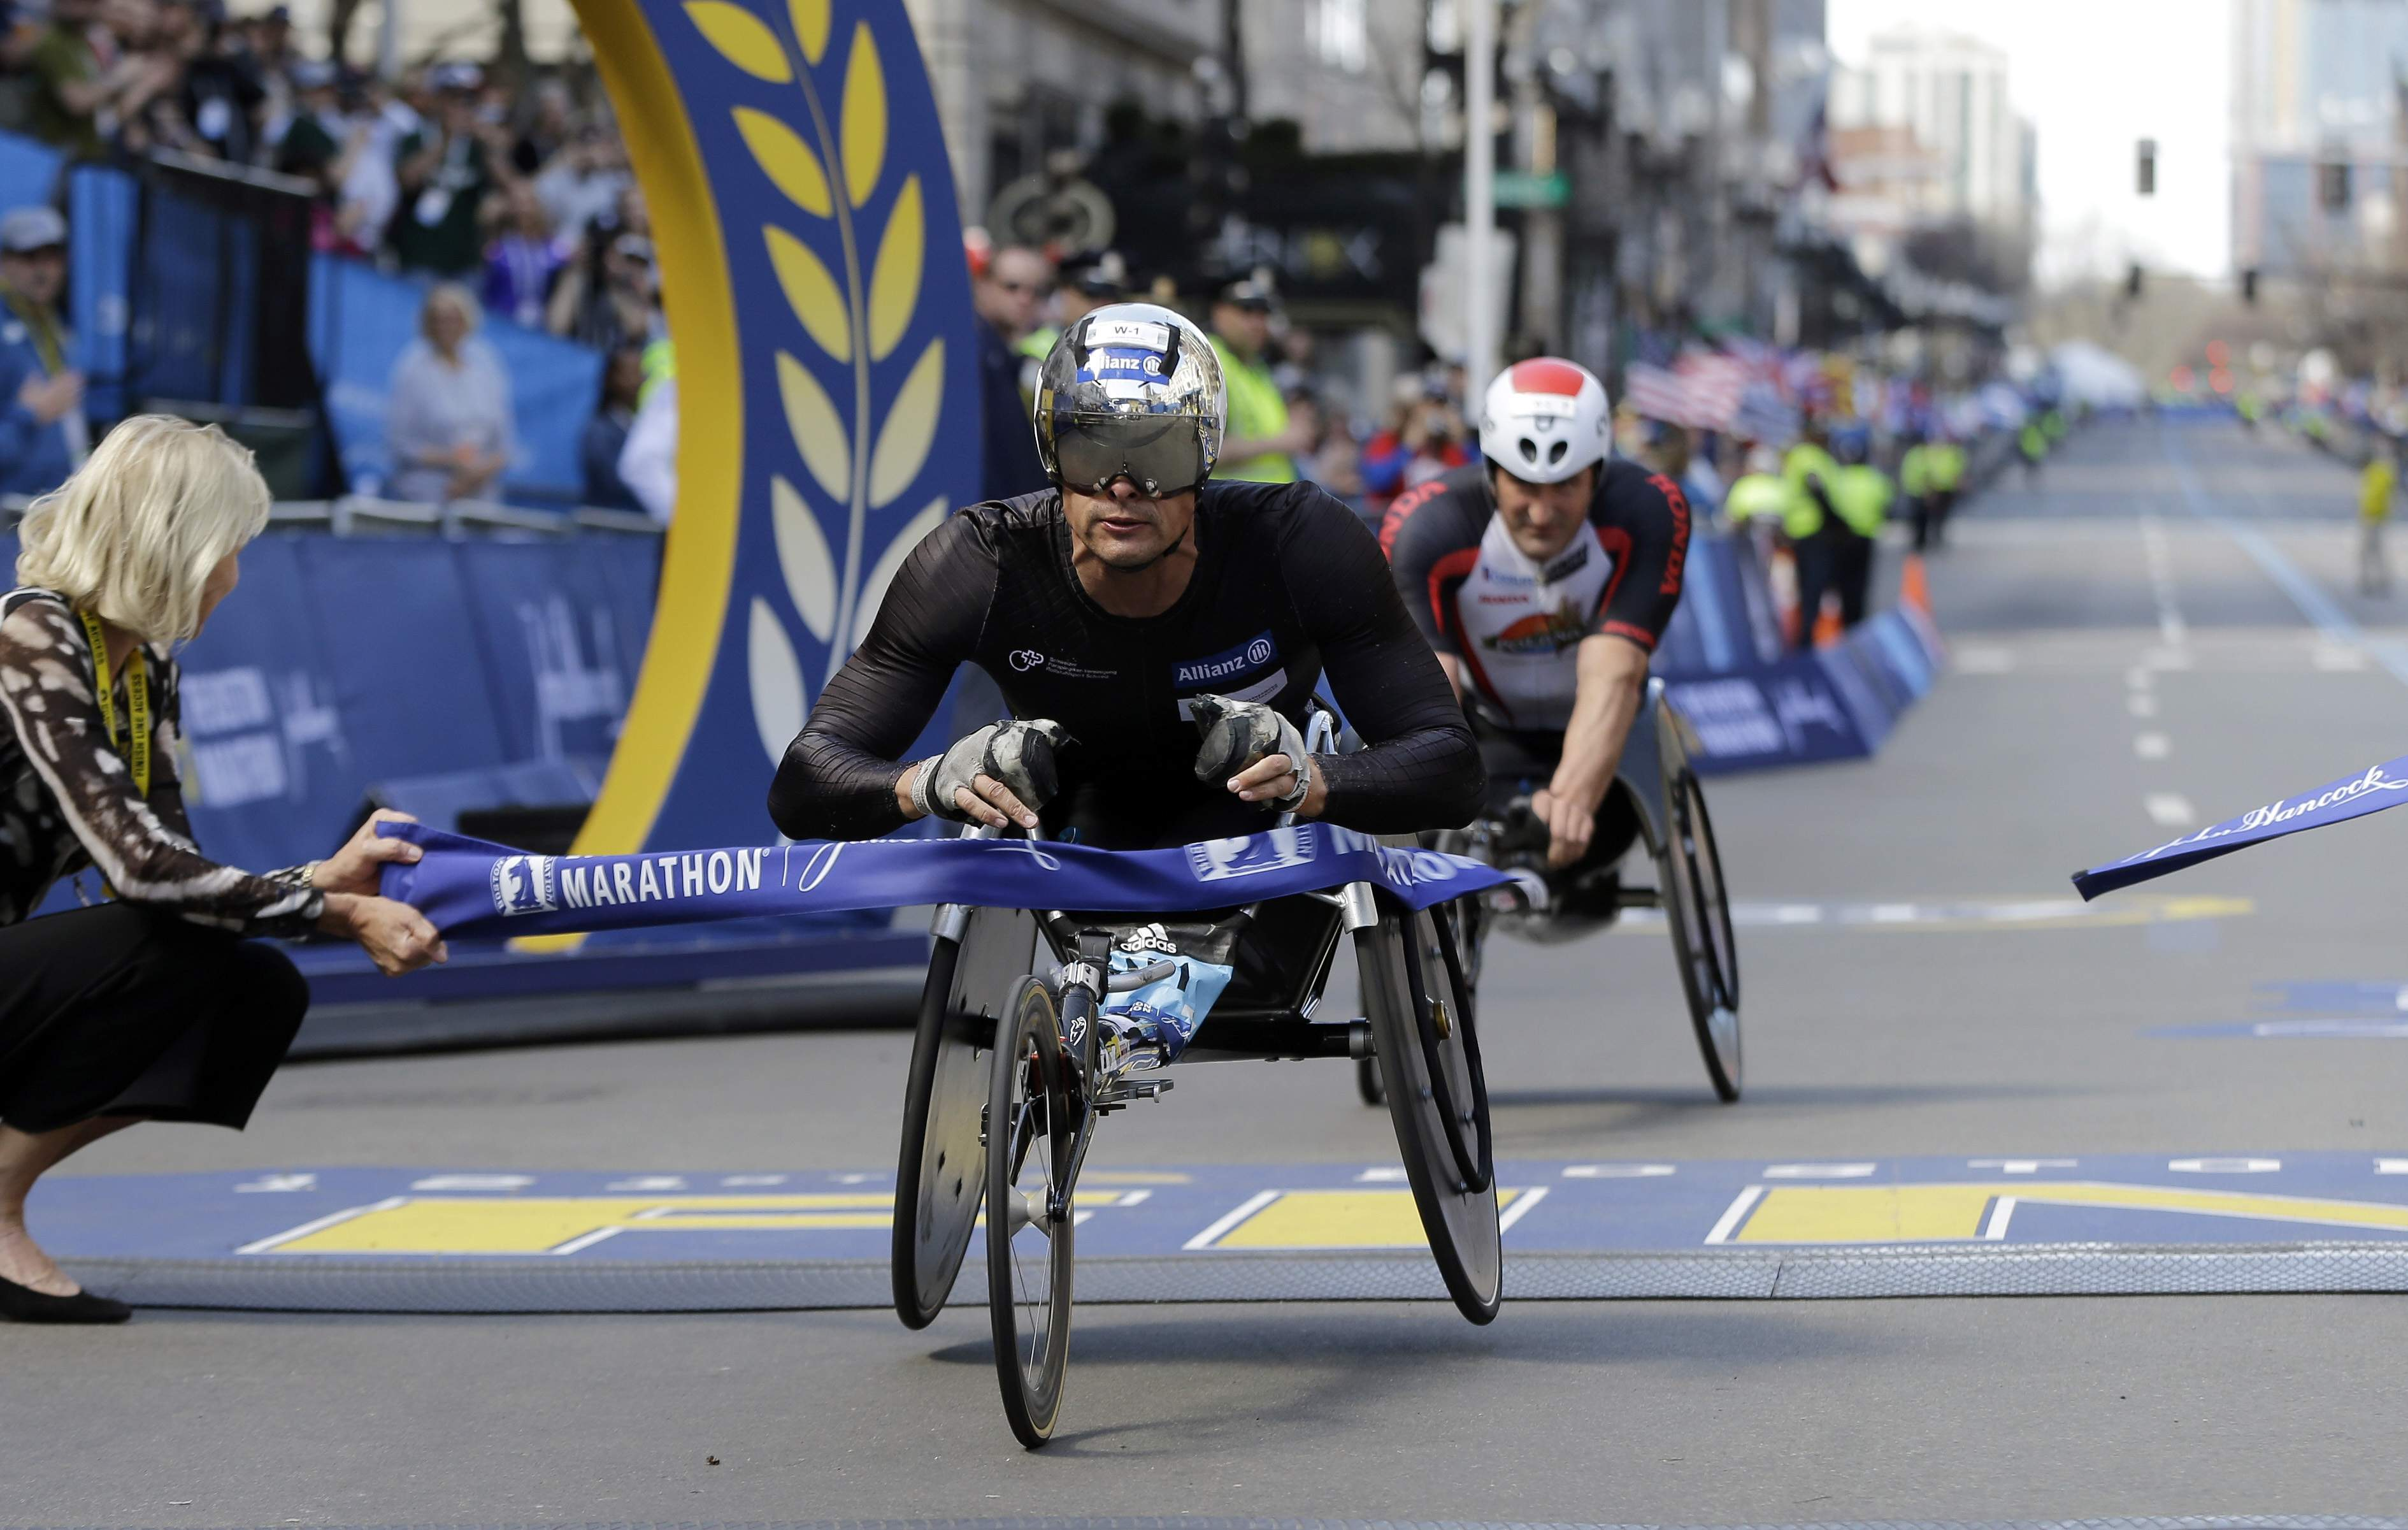 Marcel Hug, of Switzerland, wins the men's wheelchair division ahead of Ernst Van Dyk, right, of South Africa, in the 121st Boston Marathon on Monday, April 17, 2017, in Boston. THE ASSOCIATED PRESS